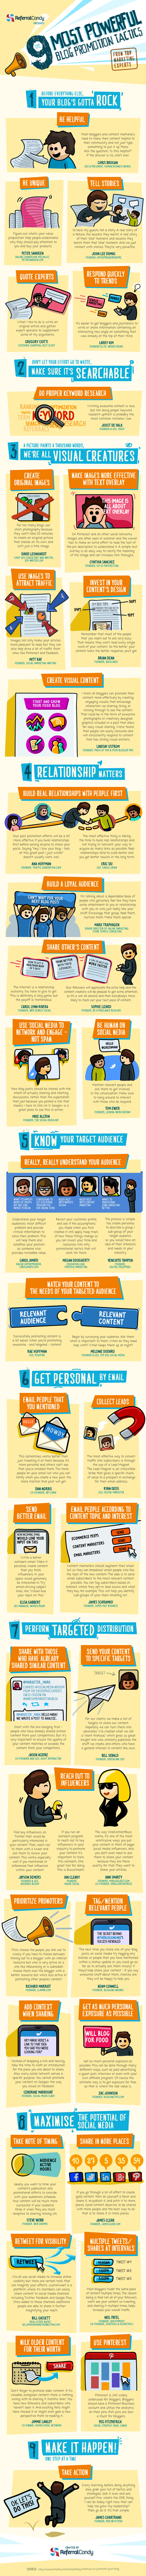 Infographic: The 9 Most Powerful Content Marketing Tactics